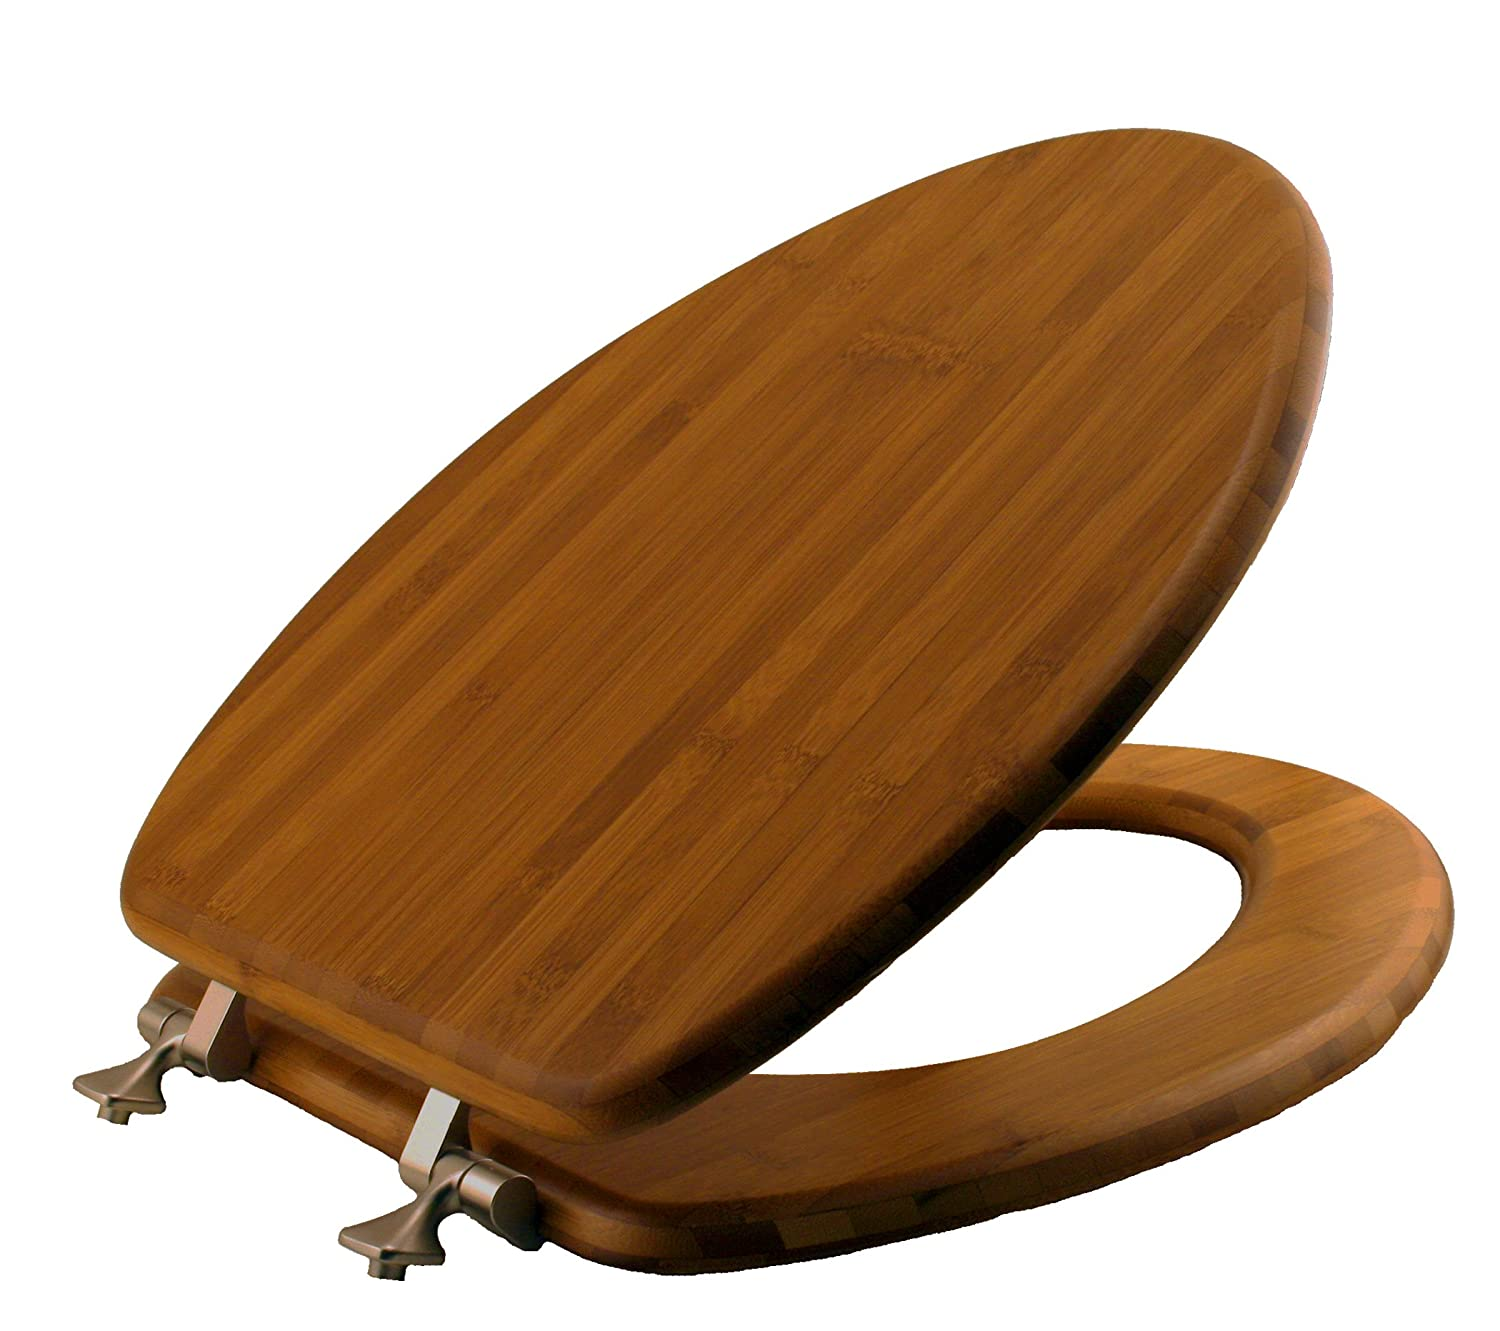 solid wood slow close toilet seat. Mayfair Solid Bamboo Toilet Seat with Brushed Nickel Hinges  Elongated Dark 19401NI 568 Amazon com